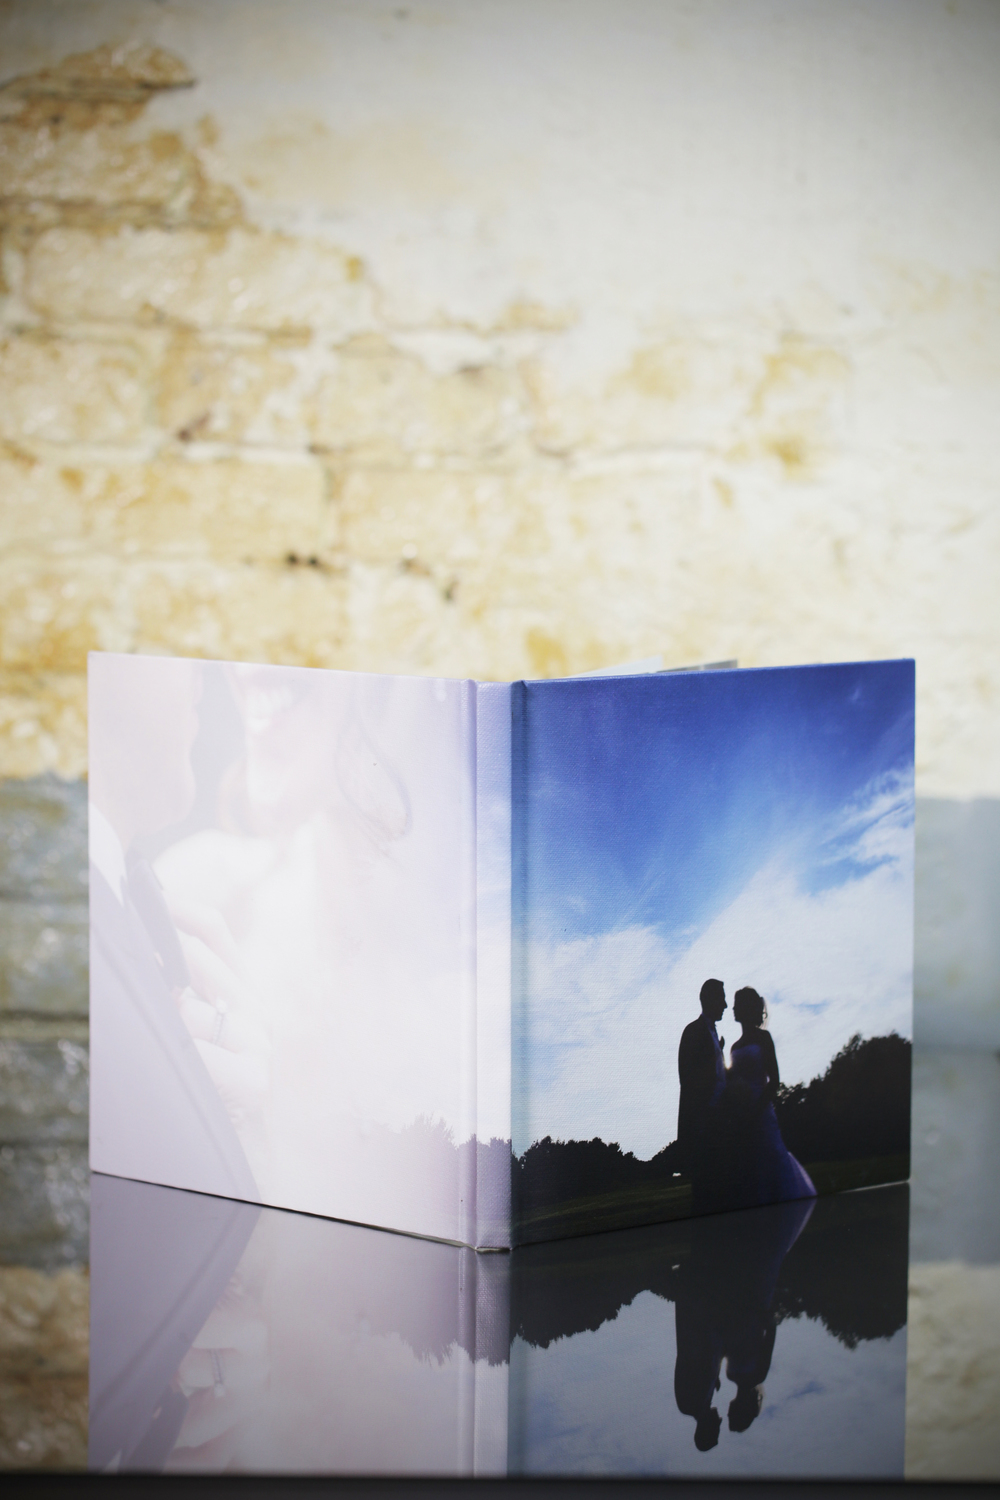 canvas or photo cover wrap around (half cover available)